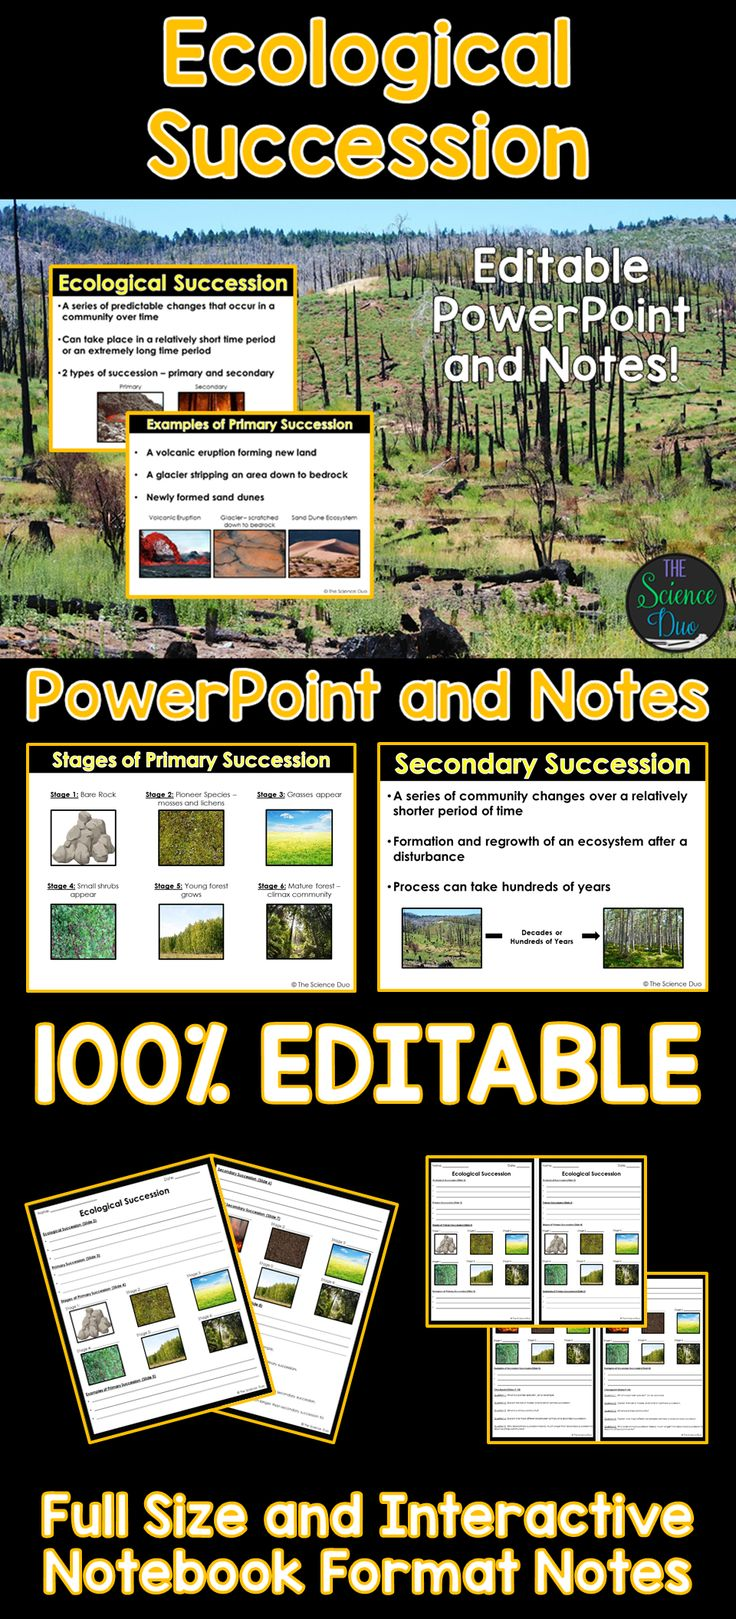 Introduce Ecological Succession (Primary and Secondary Succession) to your students with this PowerPoint presentation. This resource includes the stages of primary and secondary succession with examples.